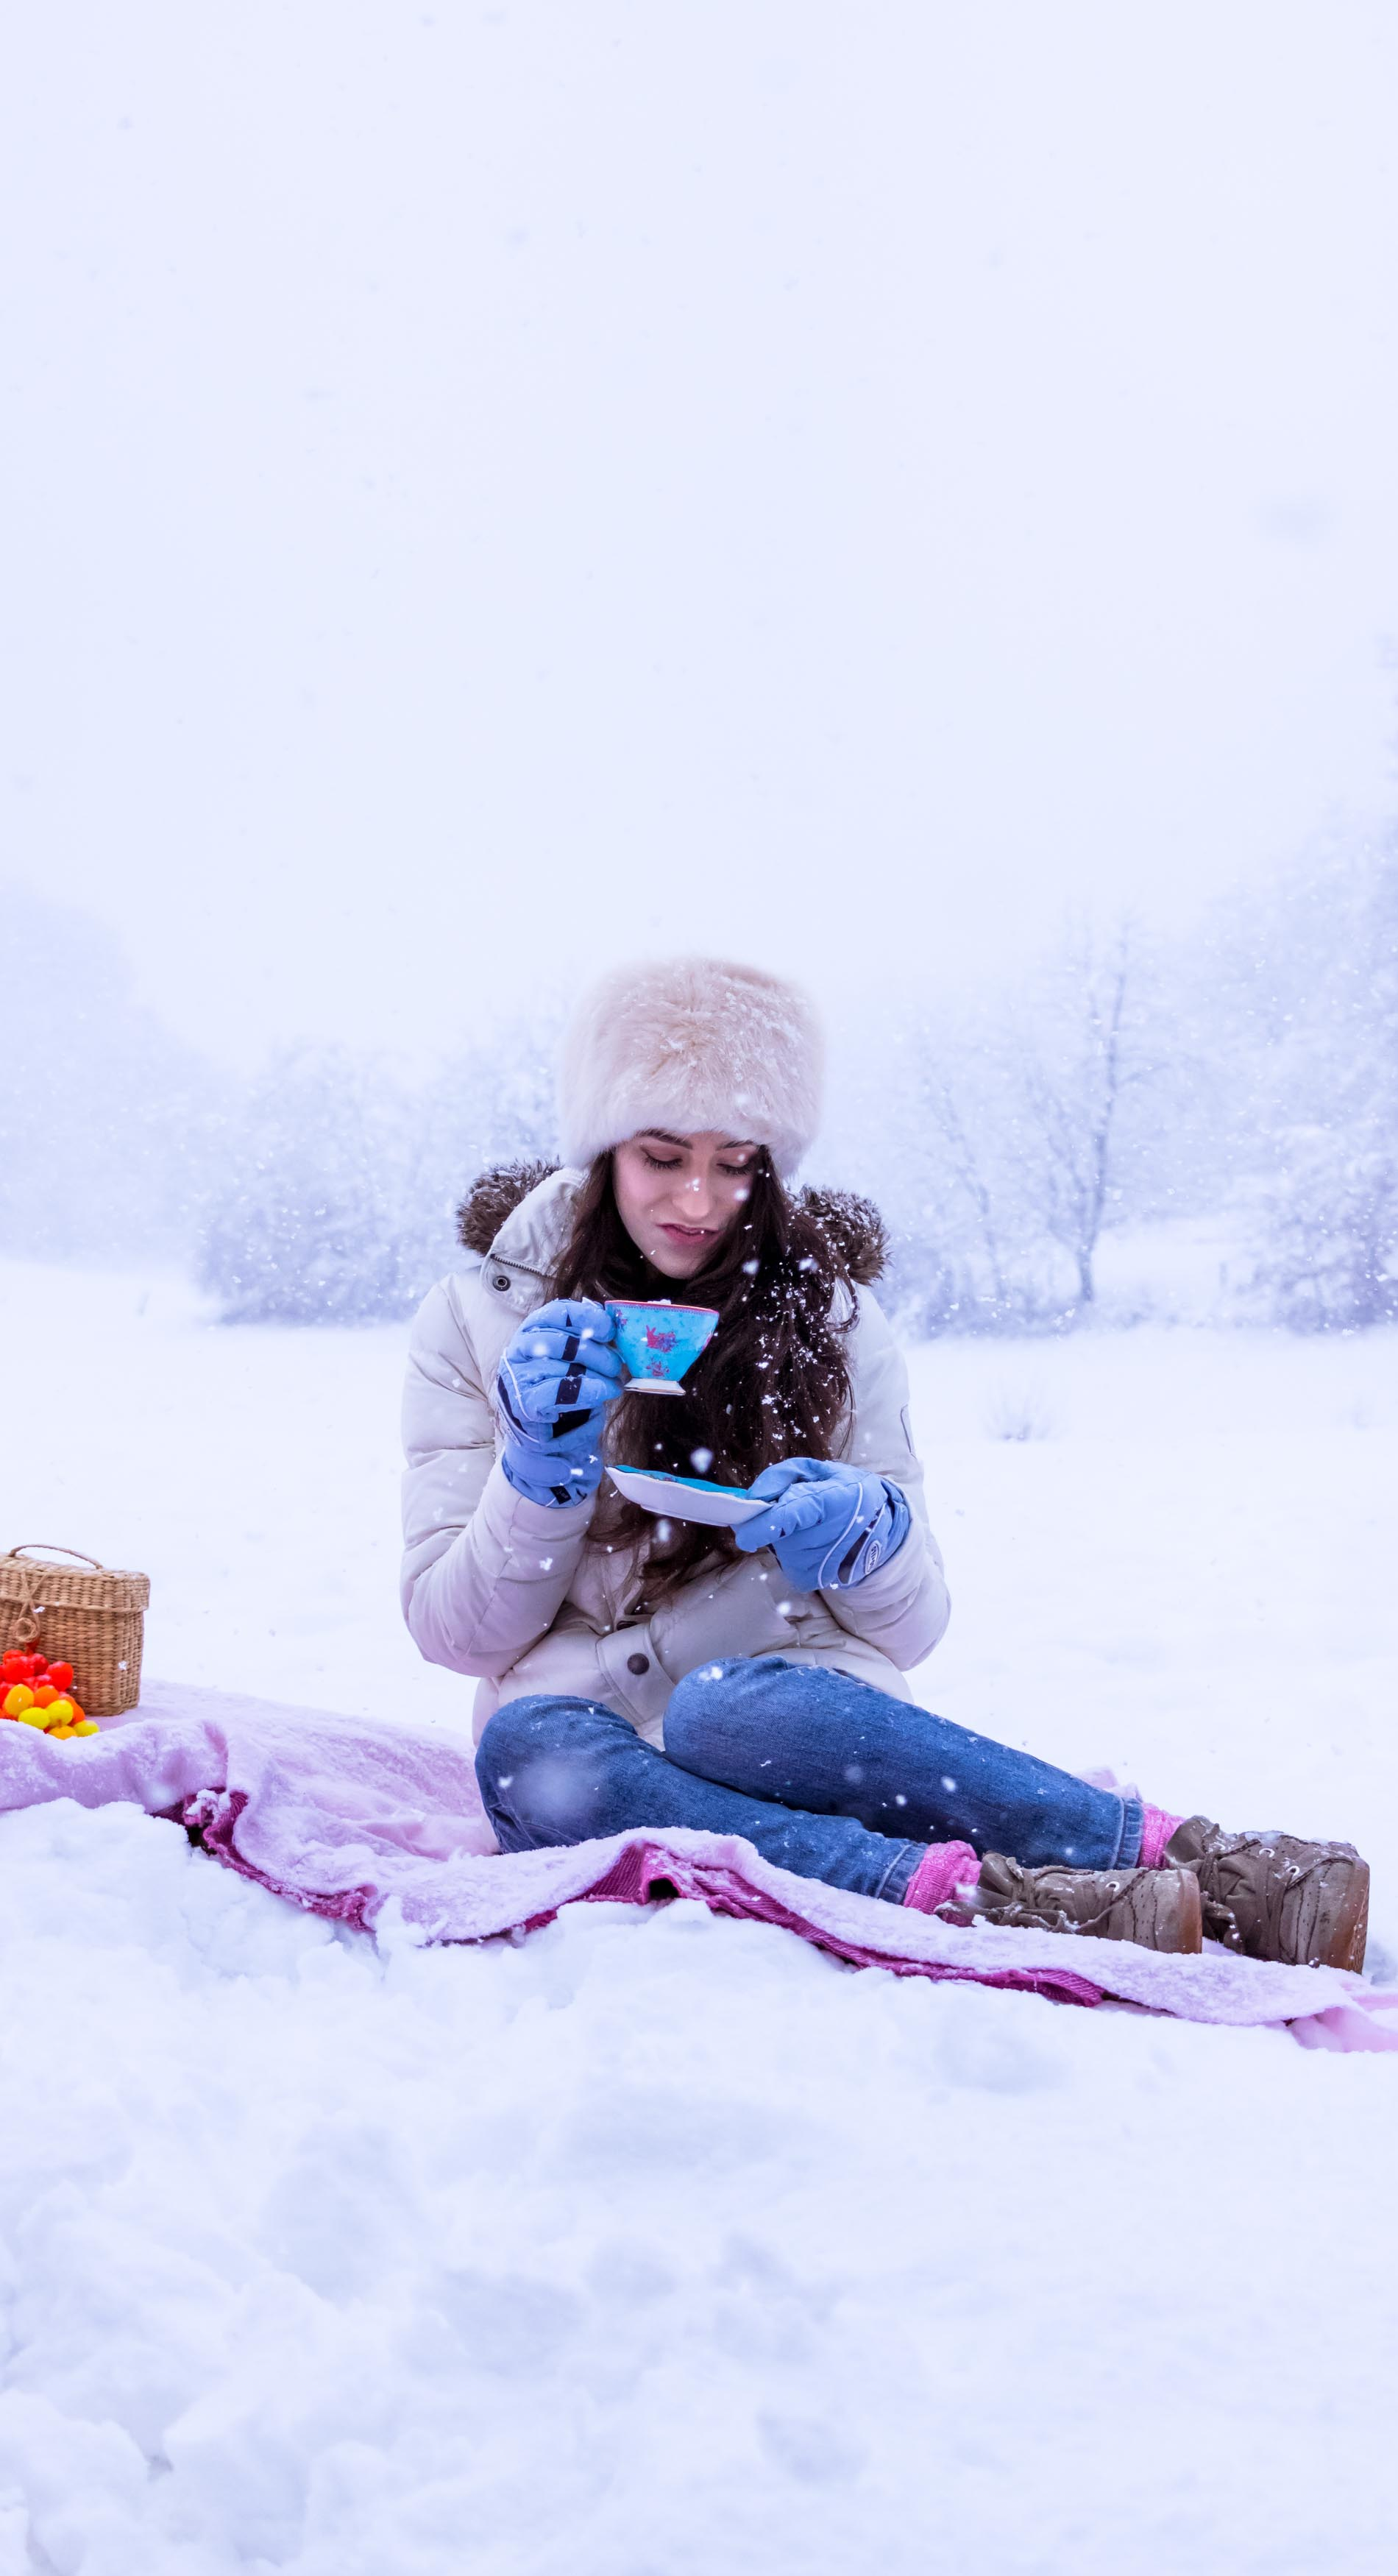 Fashion Blogger Veronika Lipar of Brunette from Wall Street wearing white down puffer jacket, blue jeans, blue snow gloves, white faux fur hat, pink wool socks and Isabel Marant Bobby sneakers, drinking tea while sitting in the snow